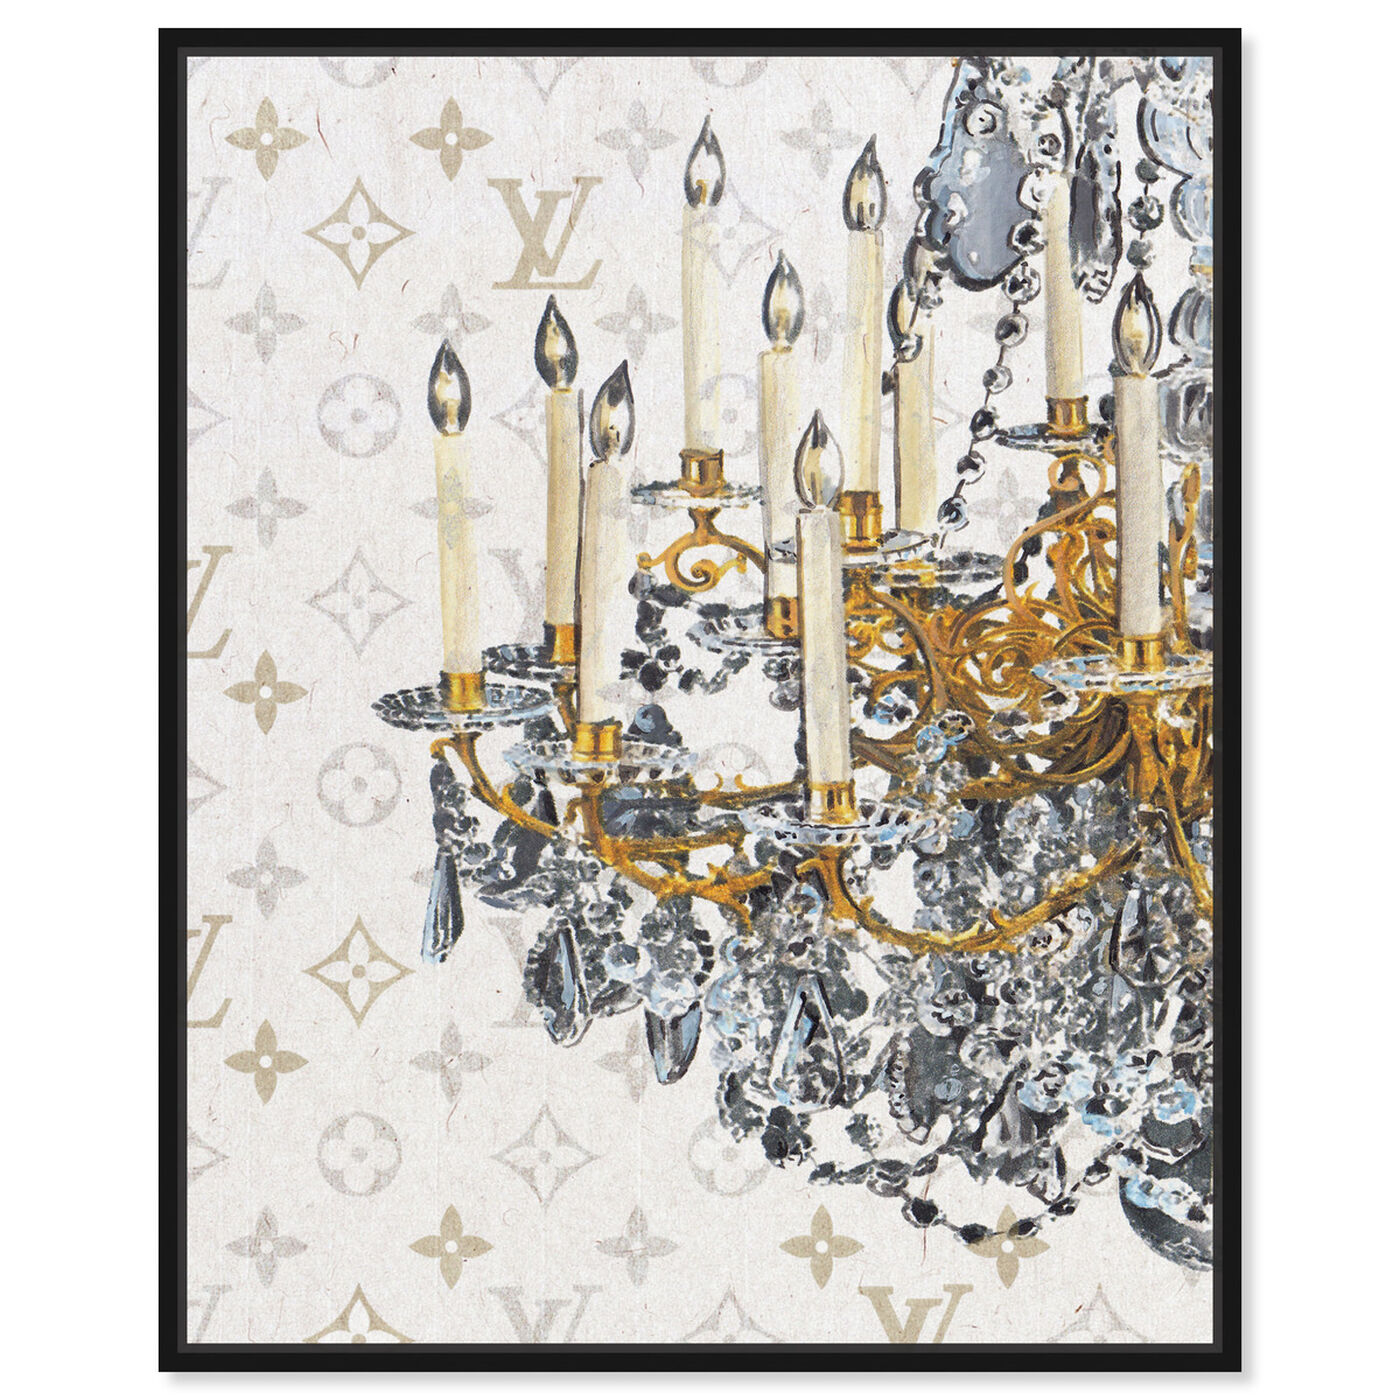 Front view of Fancy Light I featuring fashion and glam and chandeliers art.